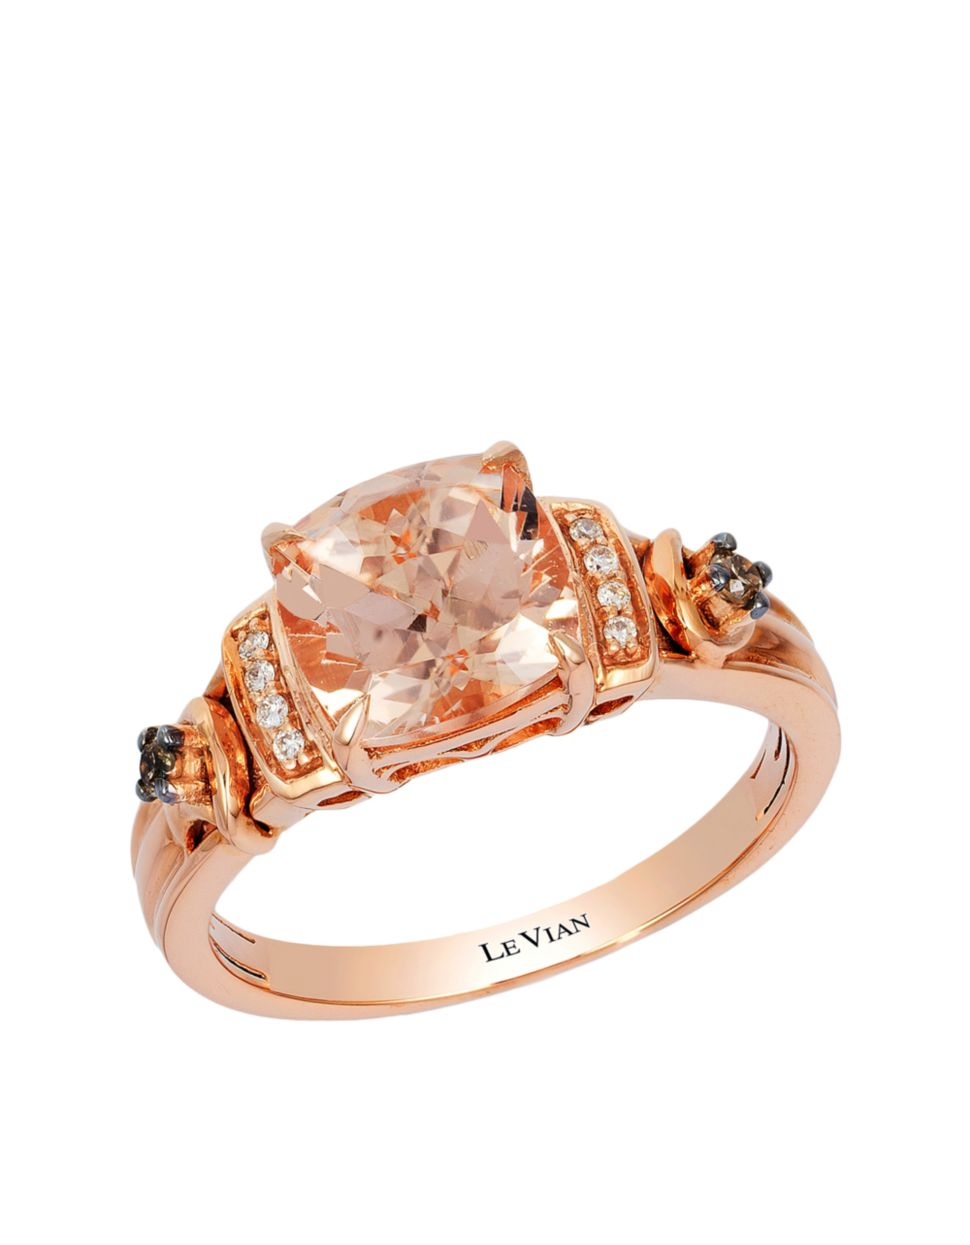 Le Vian Chocolate Diamond Rings Strawberry Gold - Pumpkin ...